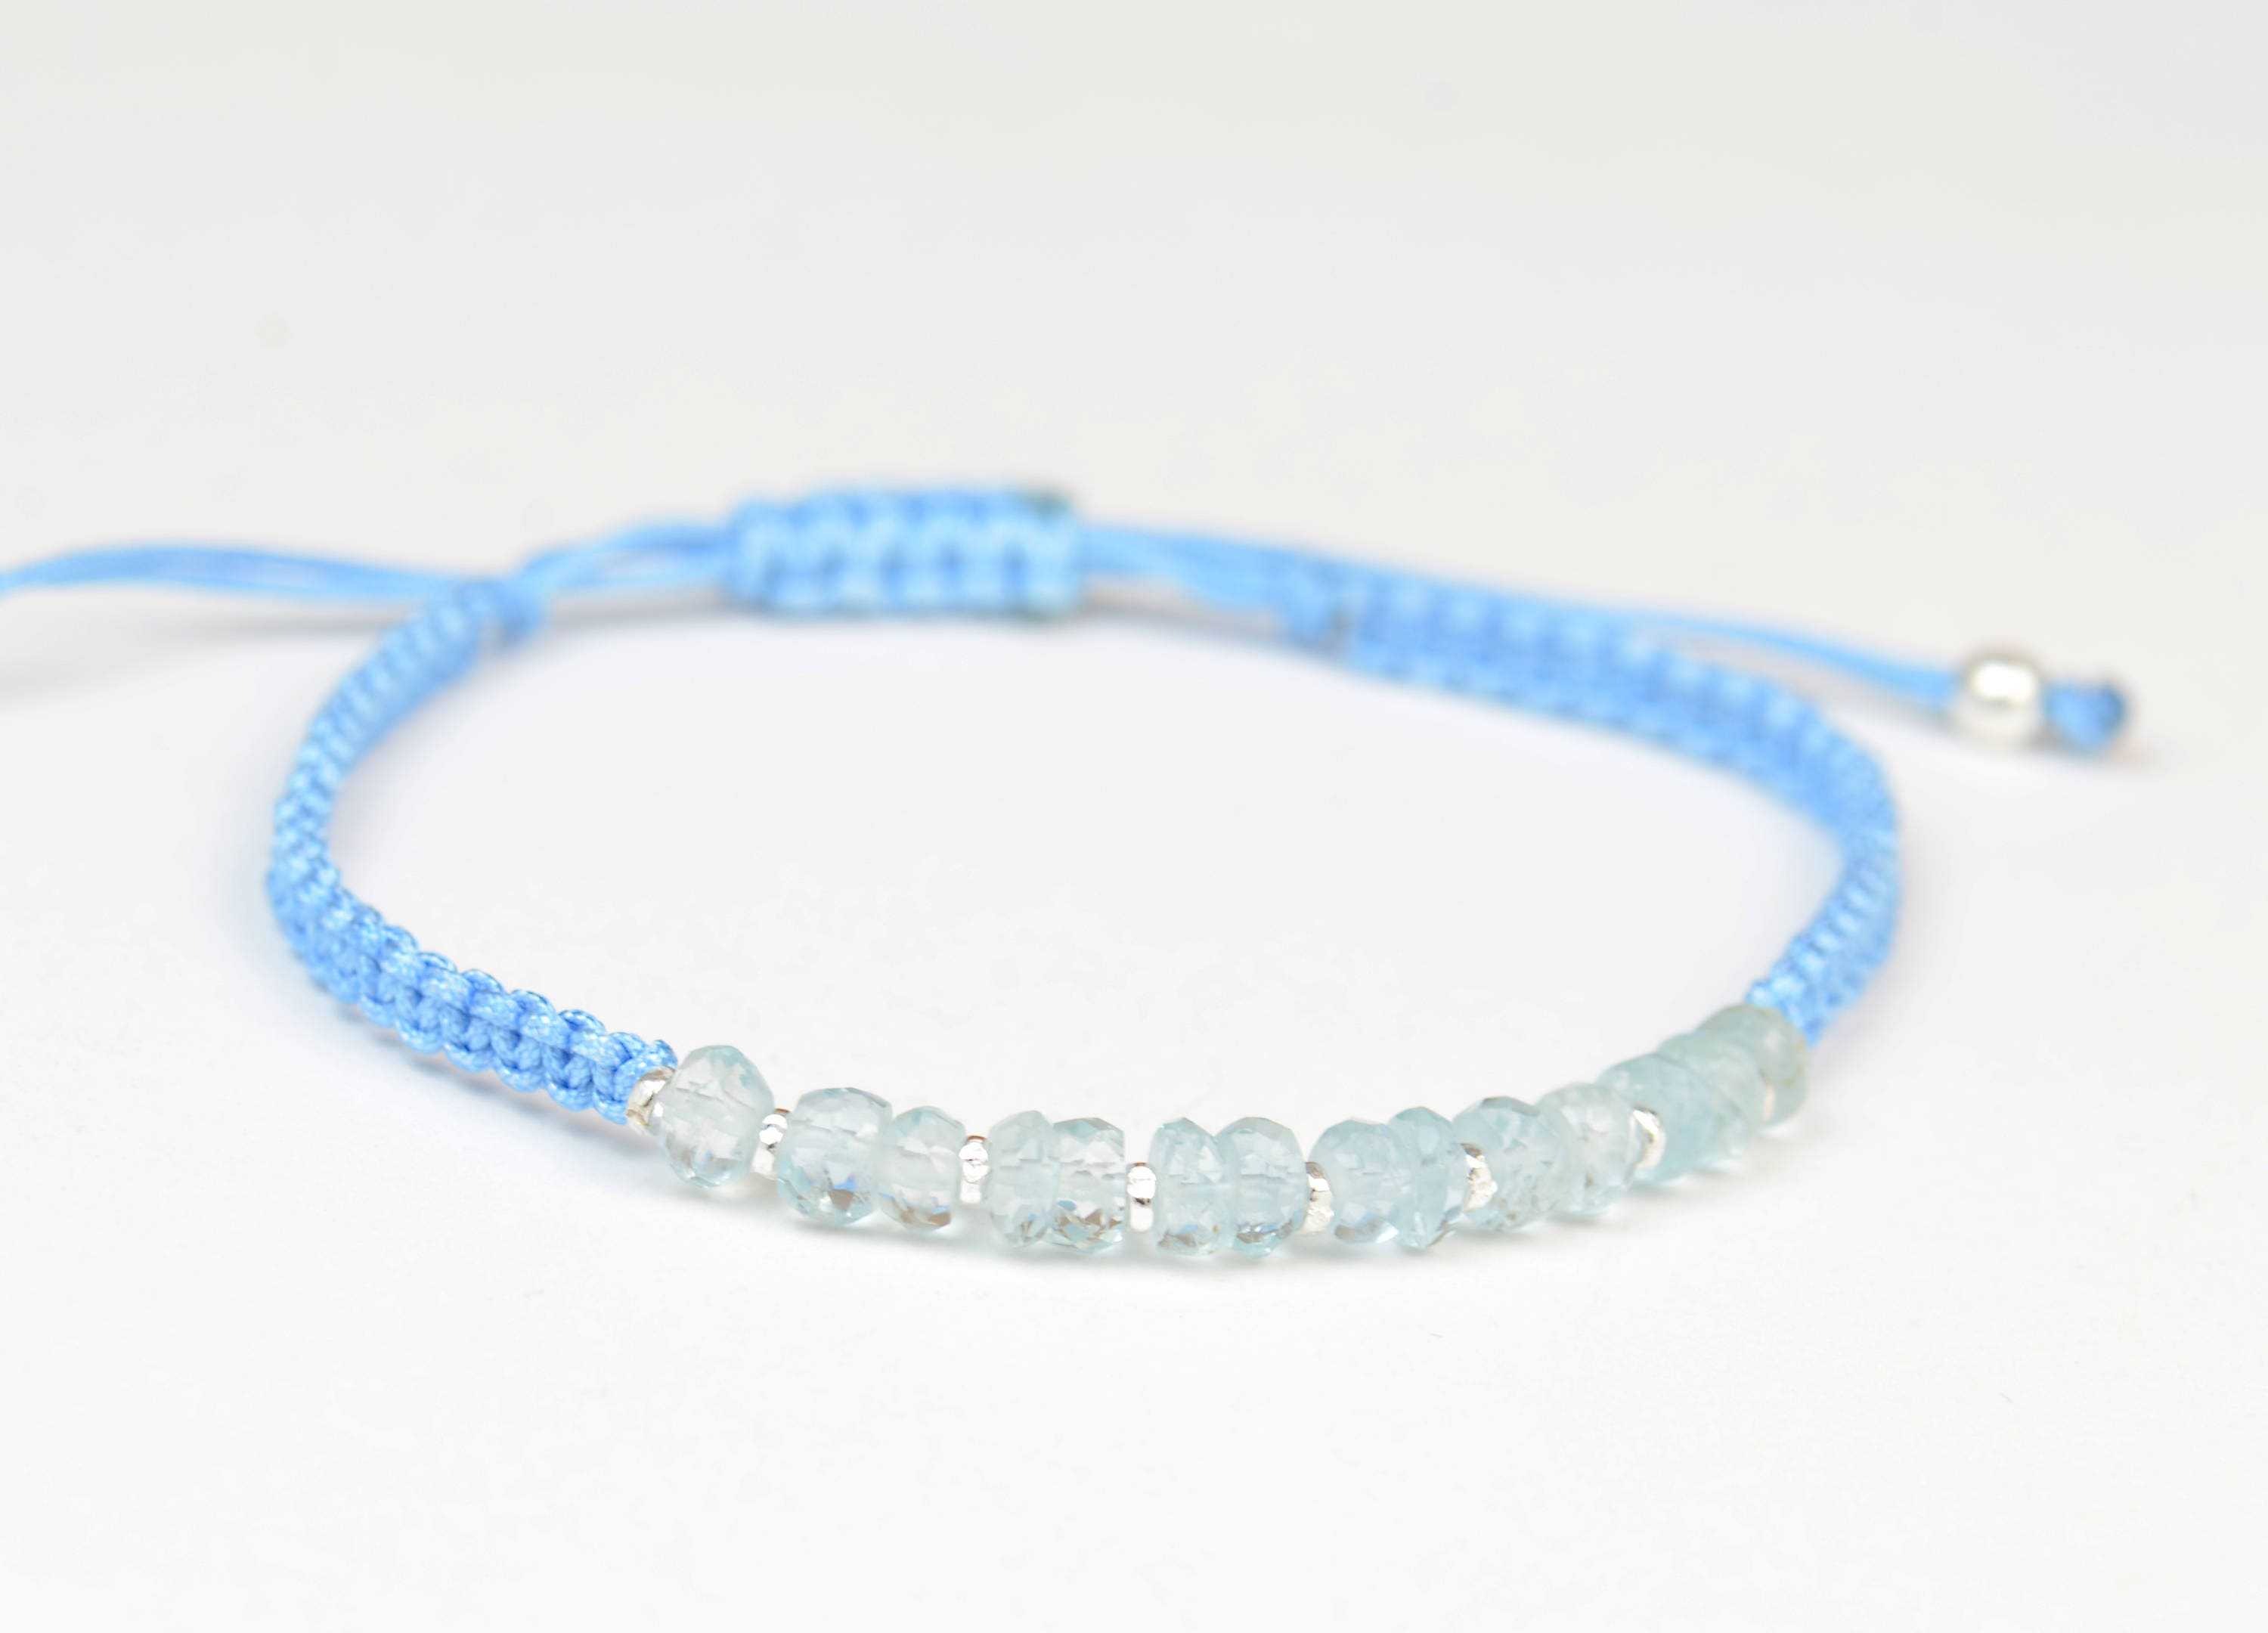 Light Blue Woven Braided Thread Silver Beaded Macrame Friendship Bracelet